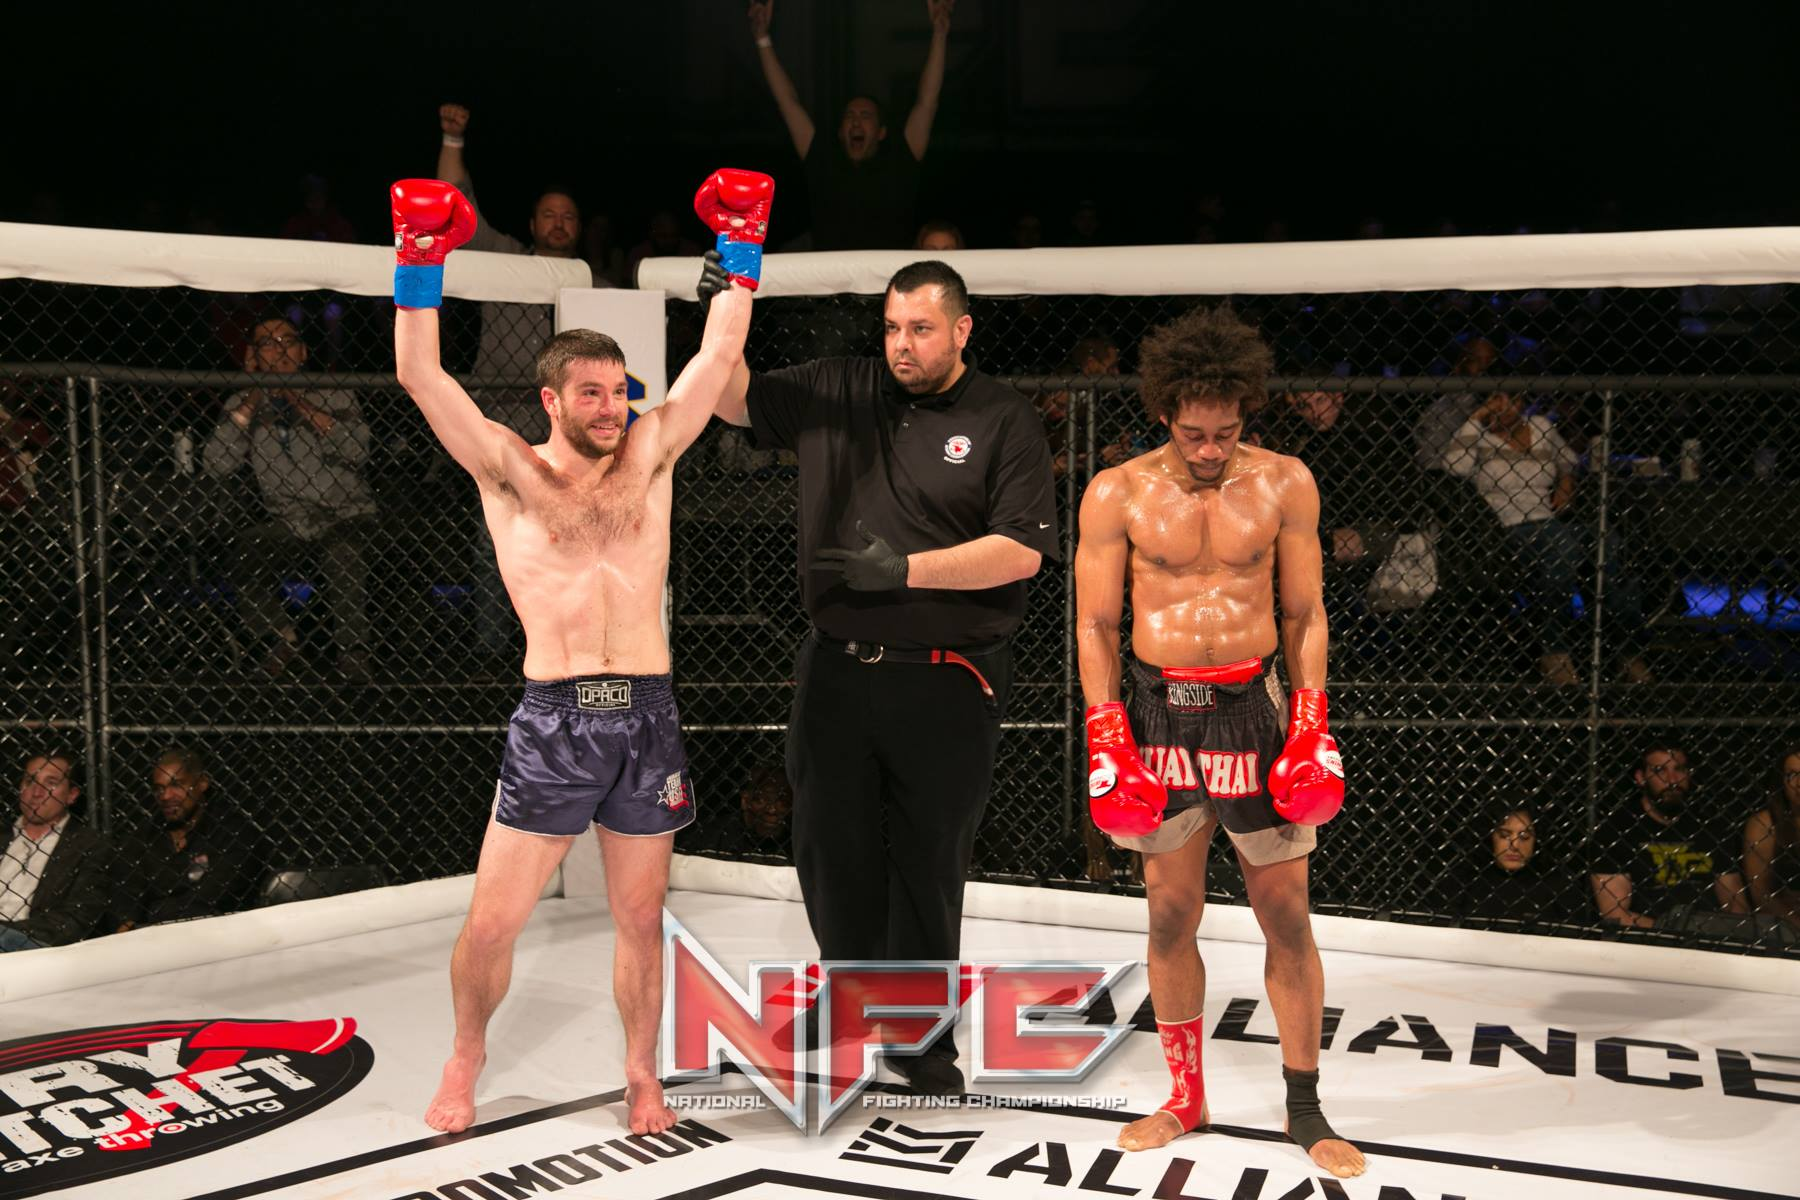 Adam Poore wins PRO Debut! - Congratulations Adam Poore on an outstanding performance in your PRO kickboxing debut!